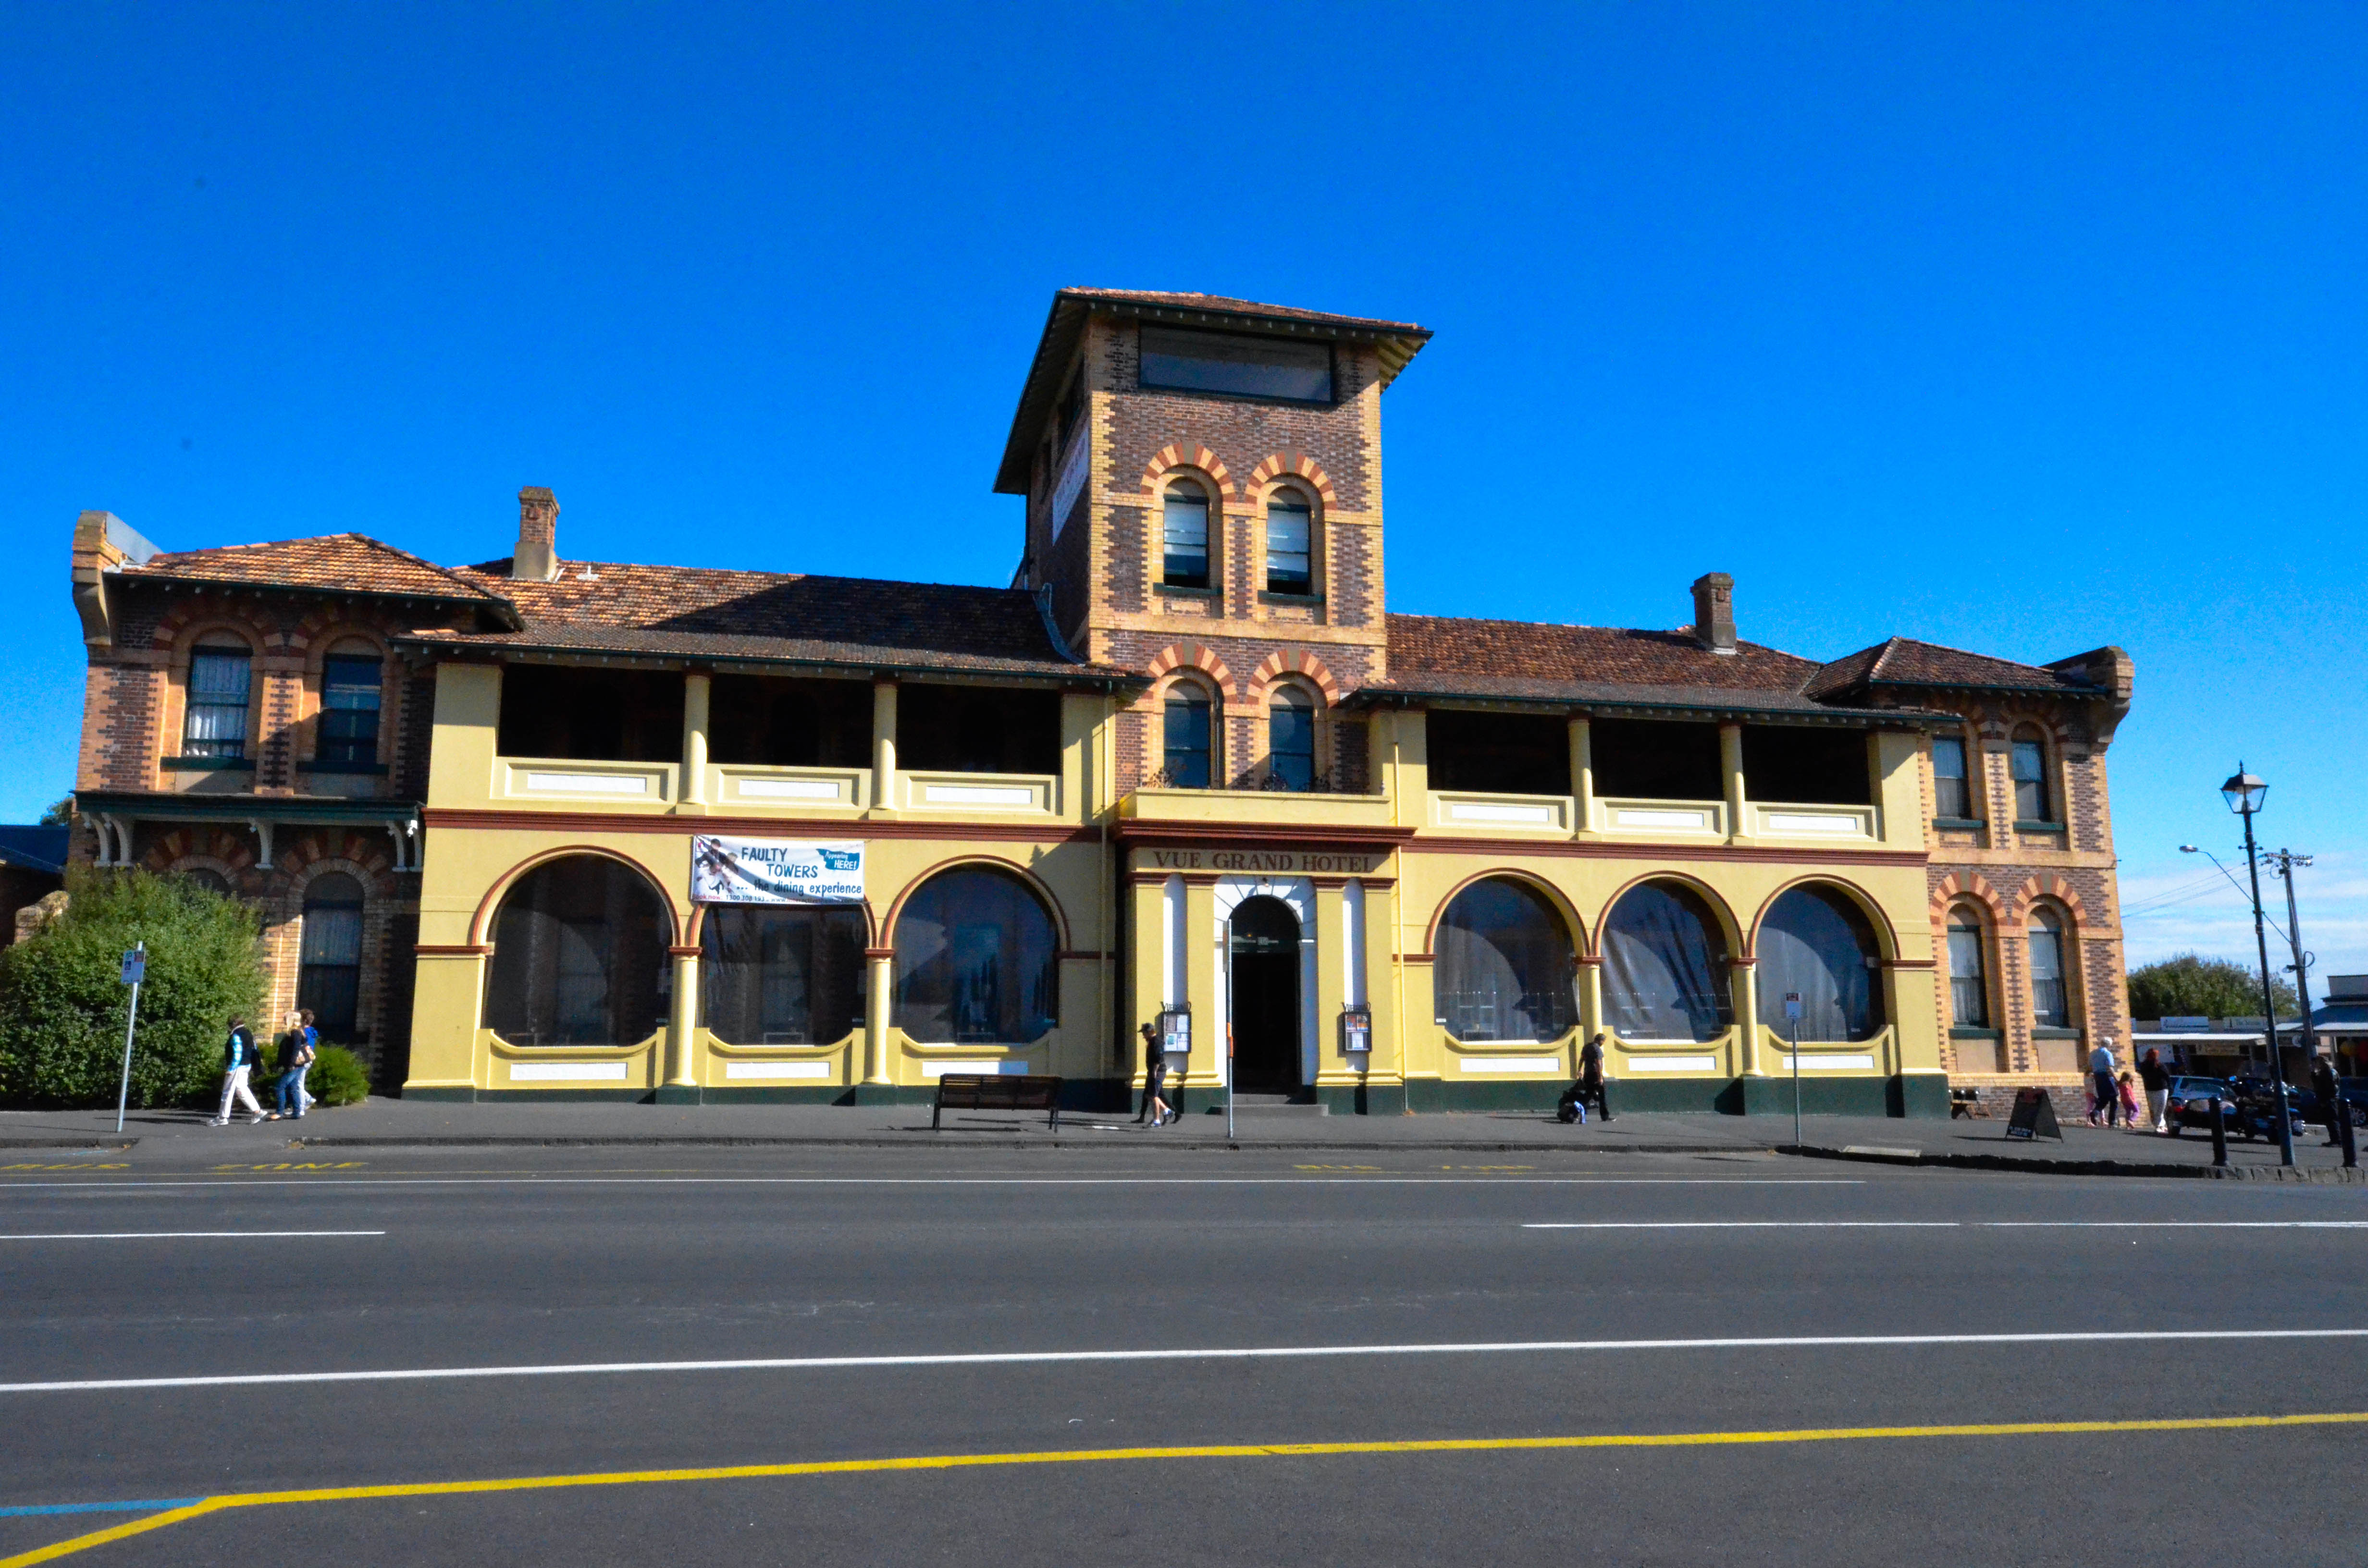 At the town centre in Queenscliff-the Vue Grand Hotel